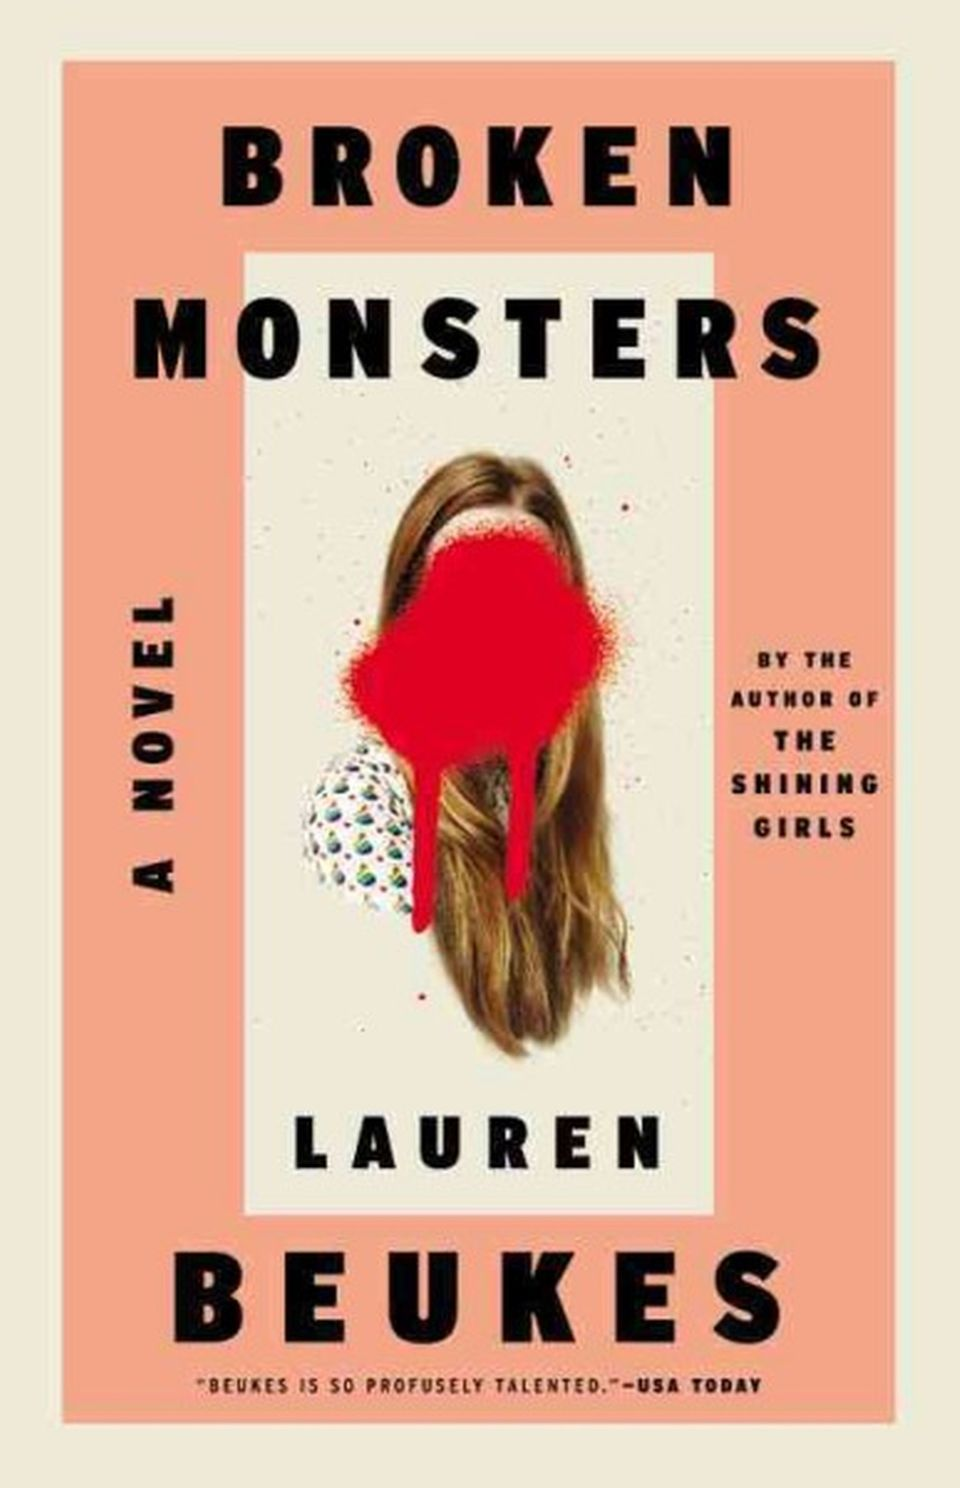 """""""Beukes gave us a time traveling serial killer in <em>The Shining Girls</em>, and the monsters in her latest tale, whether th"""